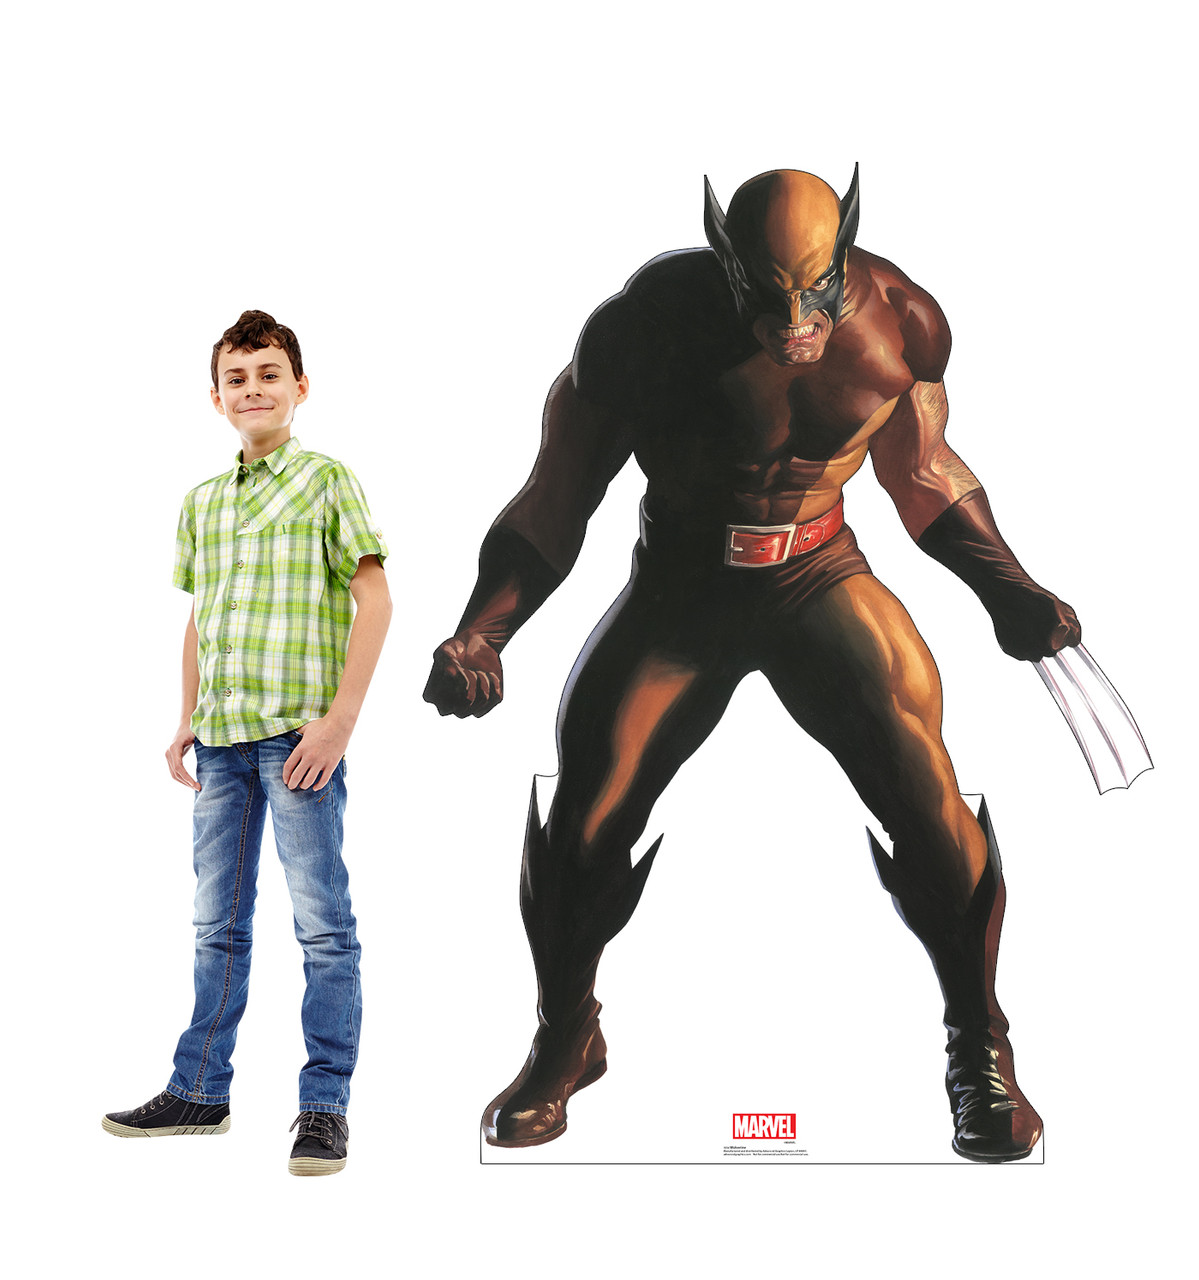 Life-size cardboard standee of Wolverine from Marvels Timeless Collection with model.